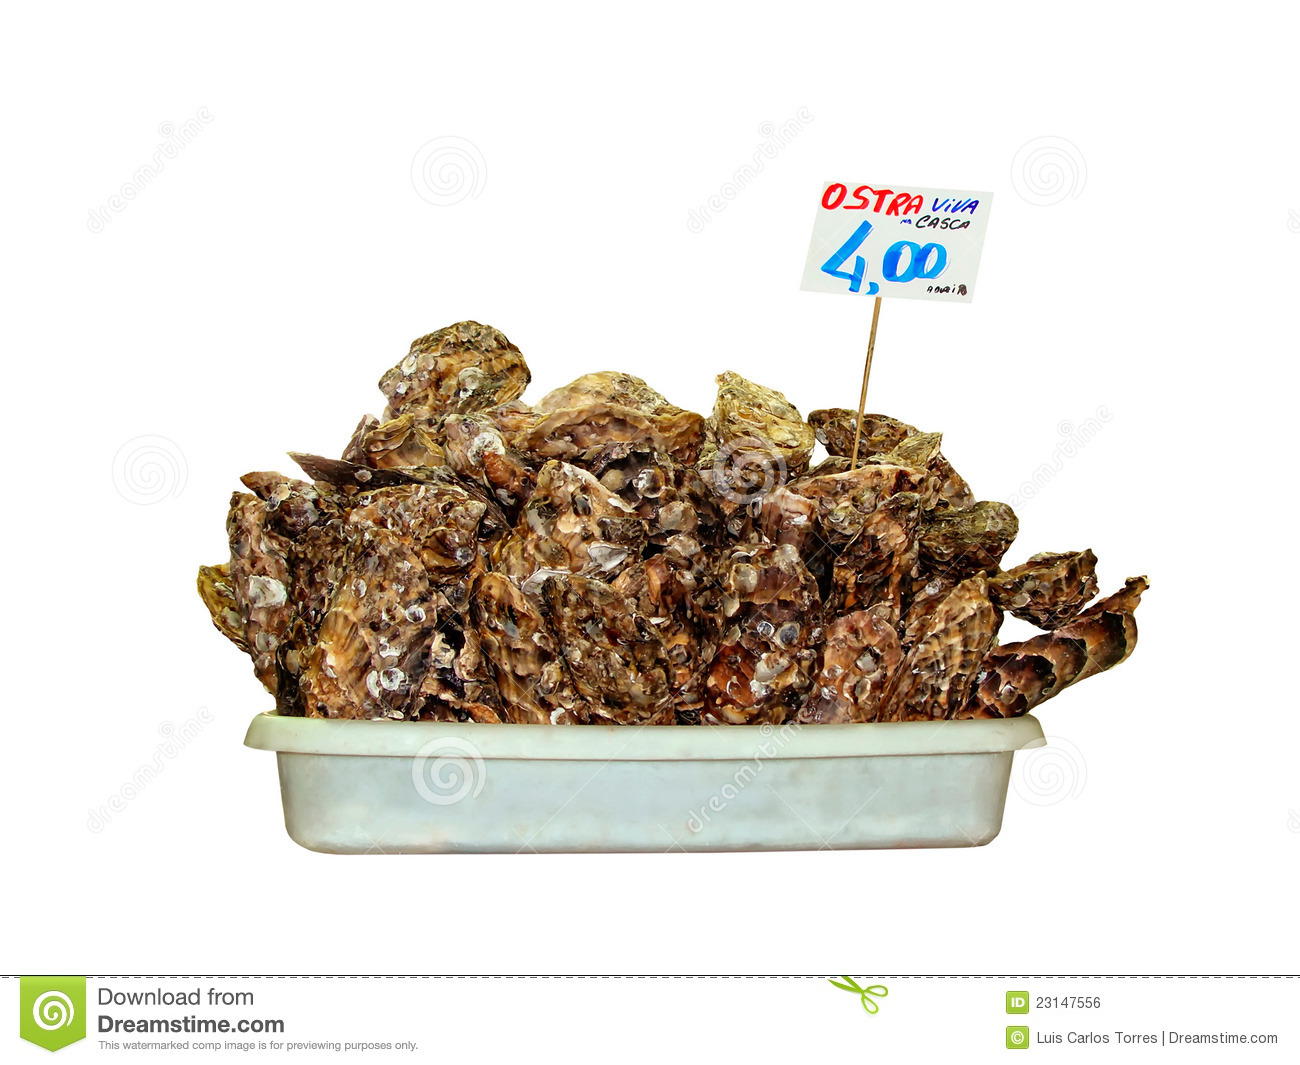 Oyster shells for selling